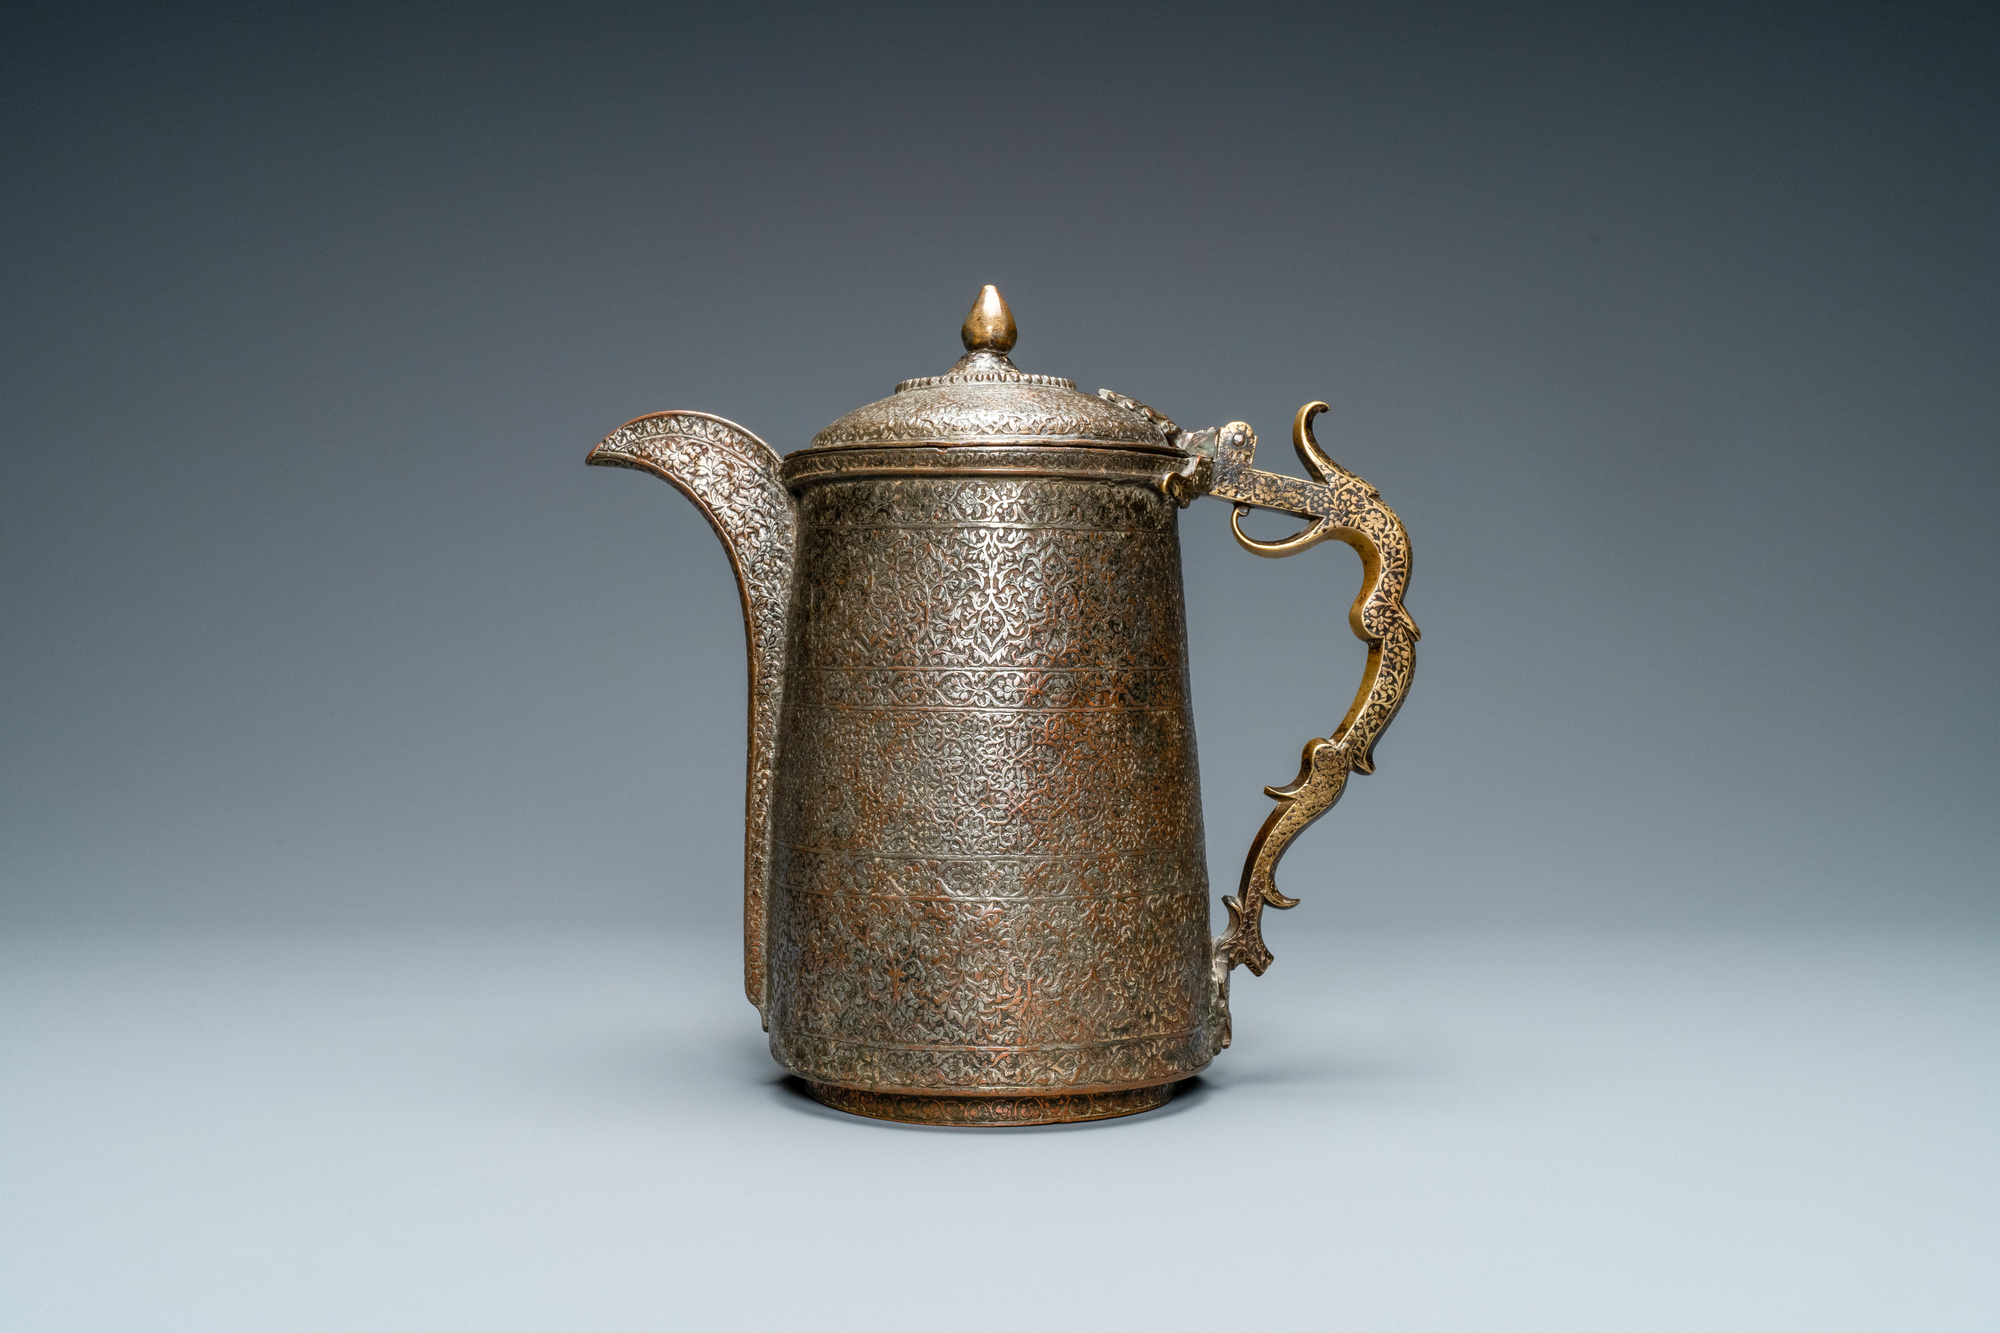 A Safavid parcel-gilt and tinned copper mug and cover, Persia, 17/18th C.